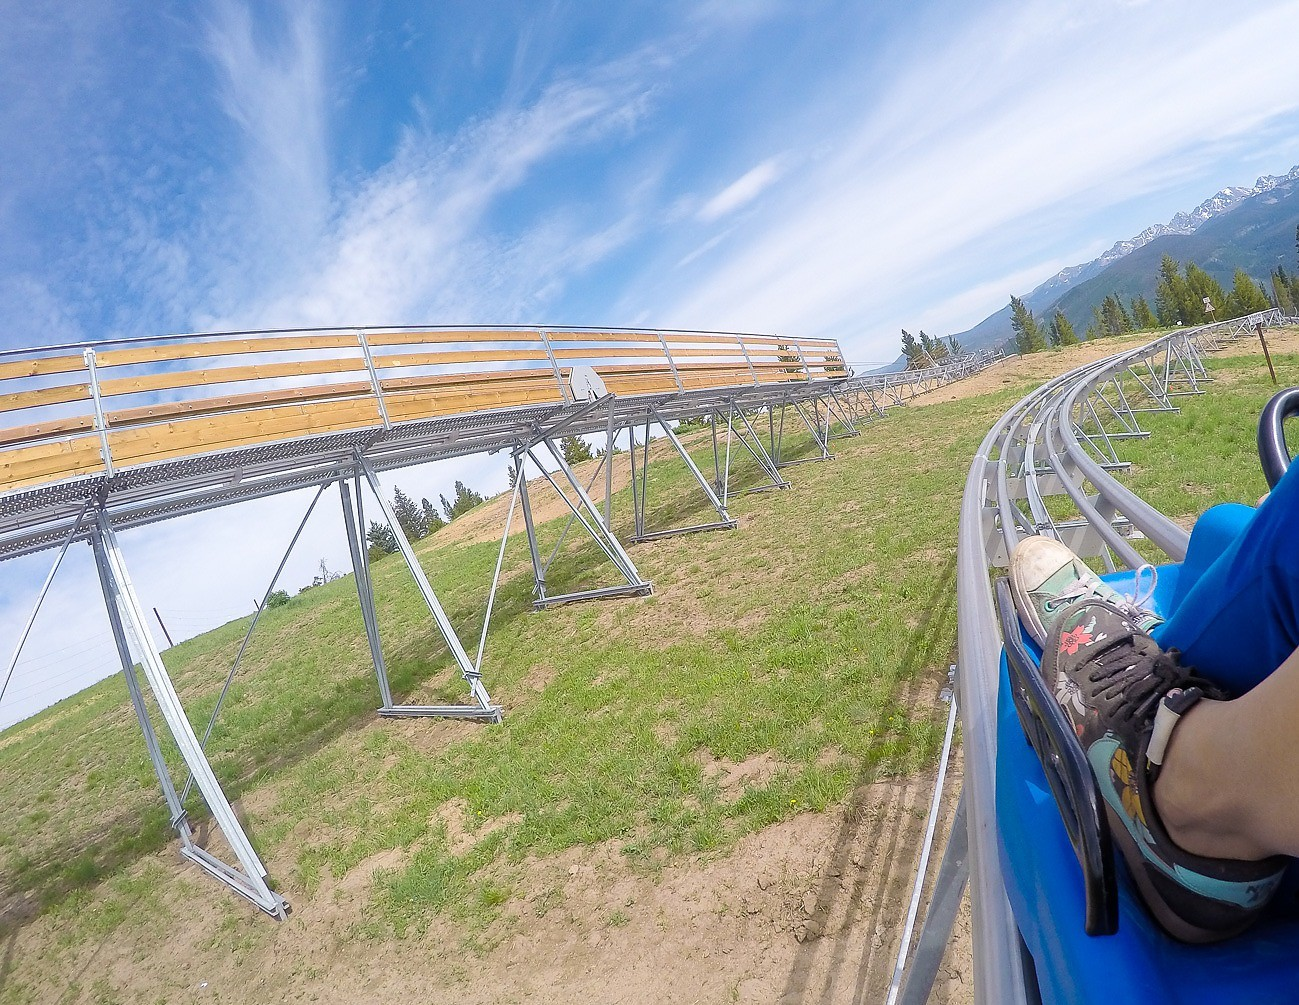 The new alpine coaster at Vail Mountain's Epic Discovery is awesome.